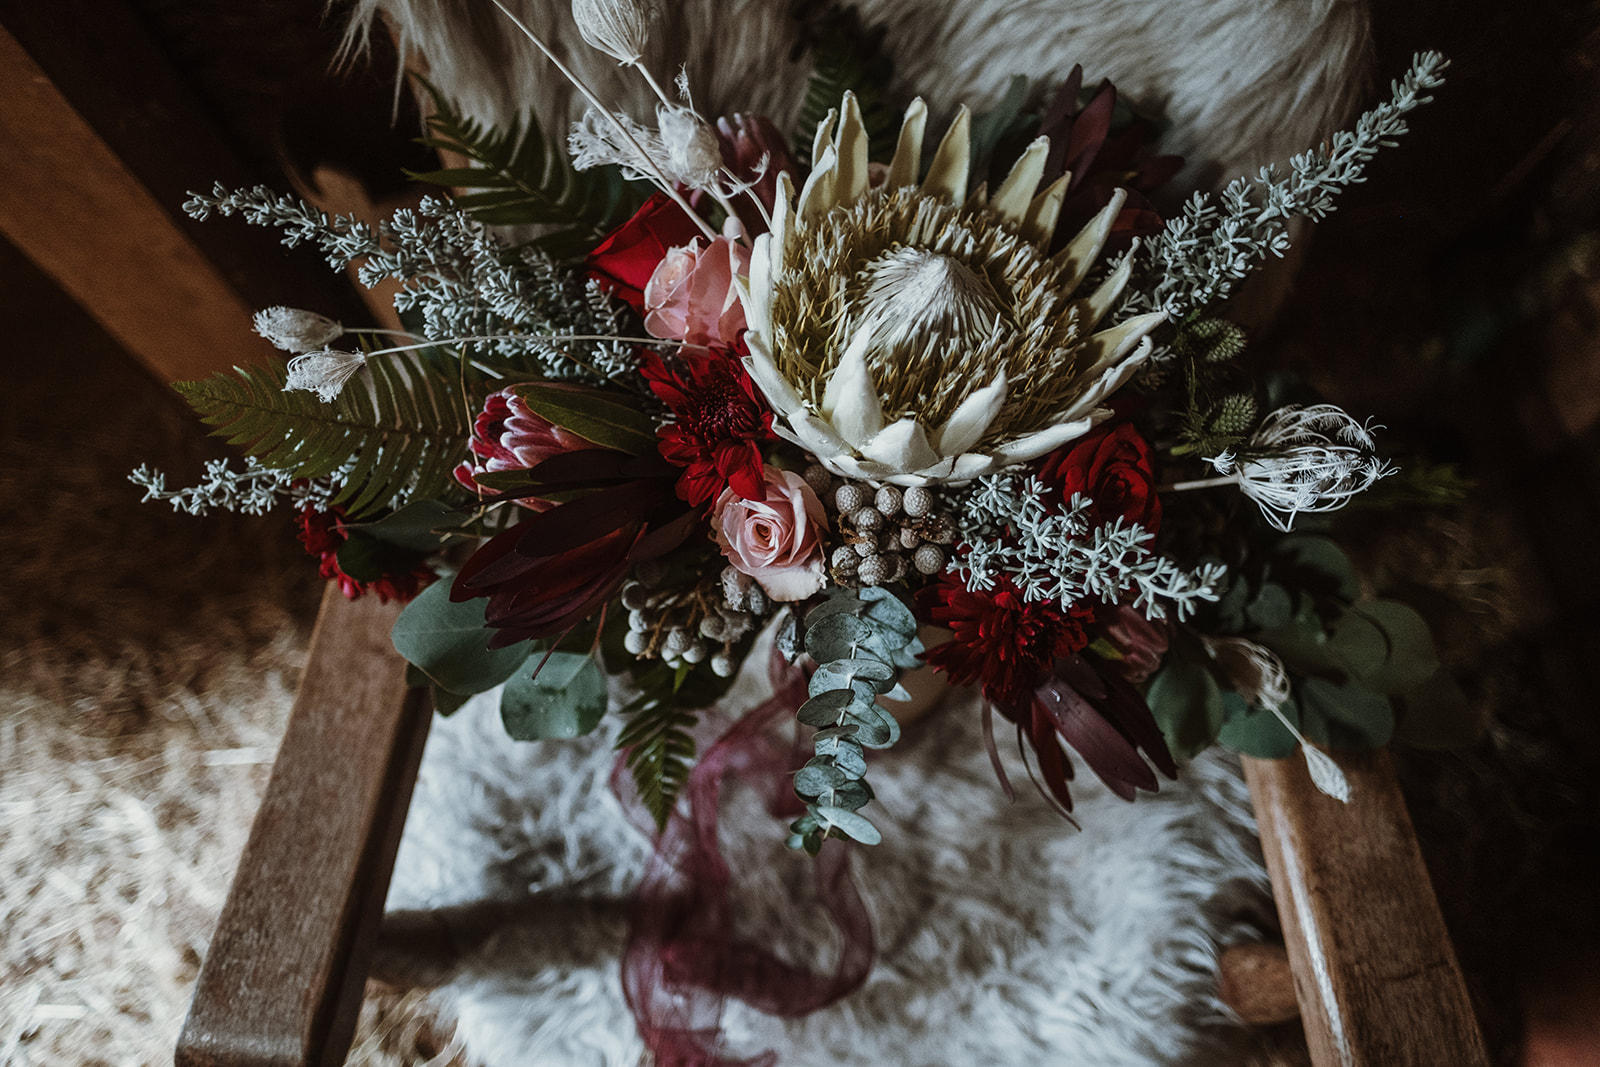 Game Of Thrones Wedding- Tom Jeavons Photography- Unconventional Wedding- Fantasy Wedding- Themed Wedding- unique wedding flowers